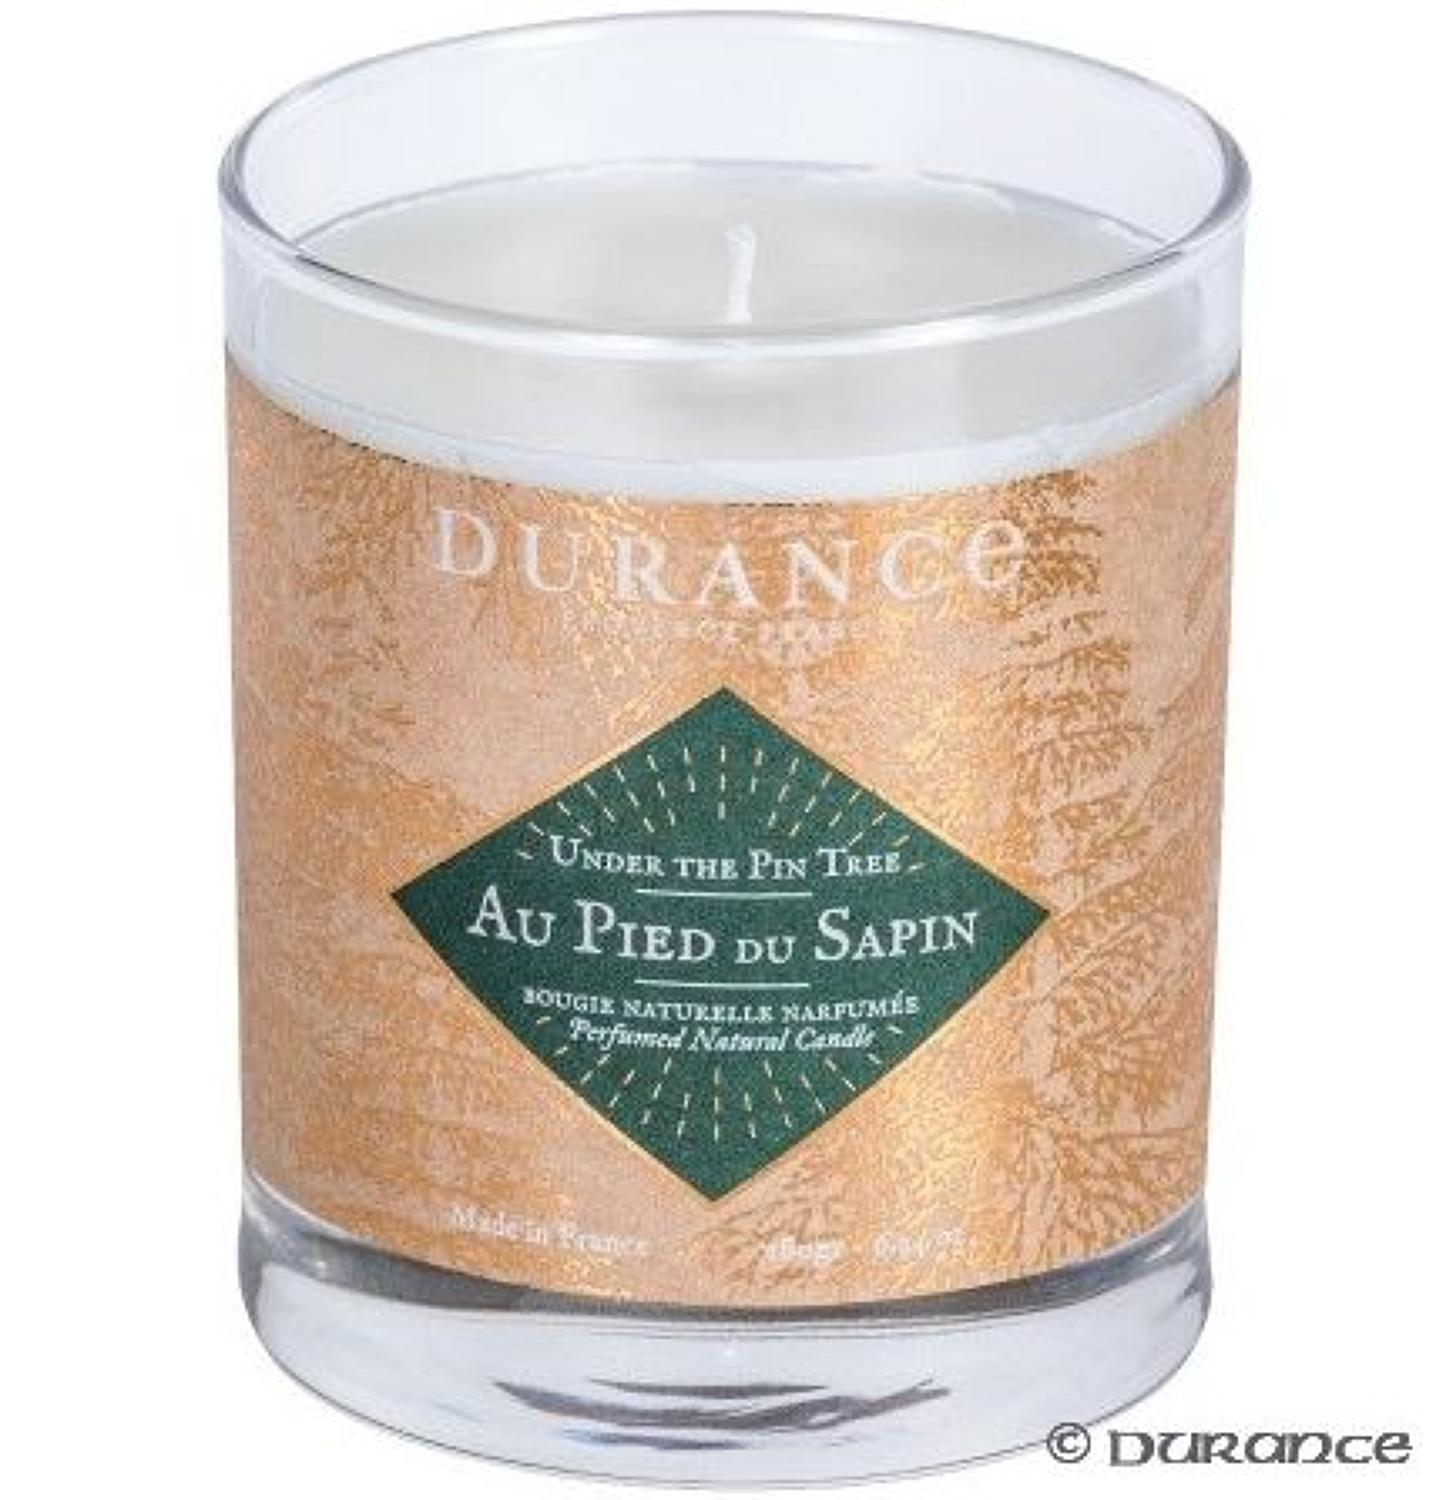 Under The Pine Tree candle - 180g